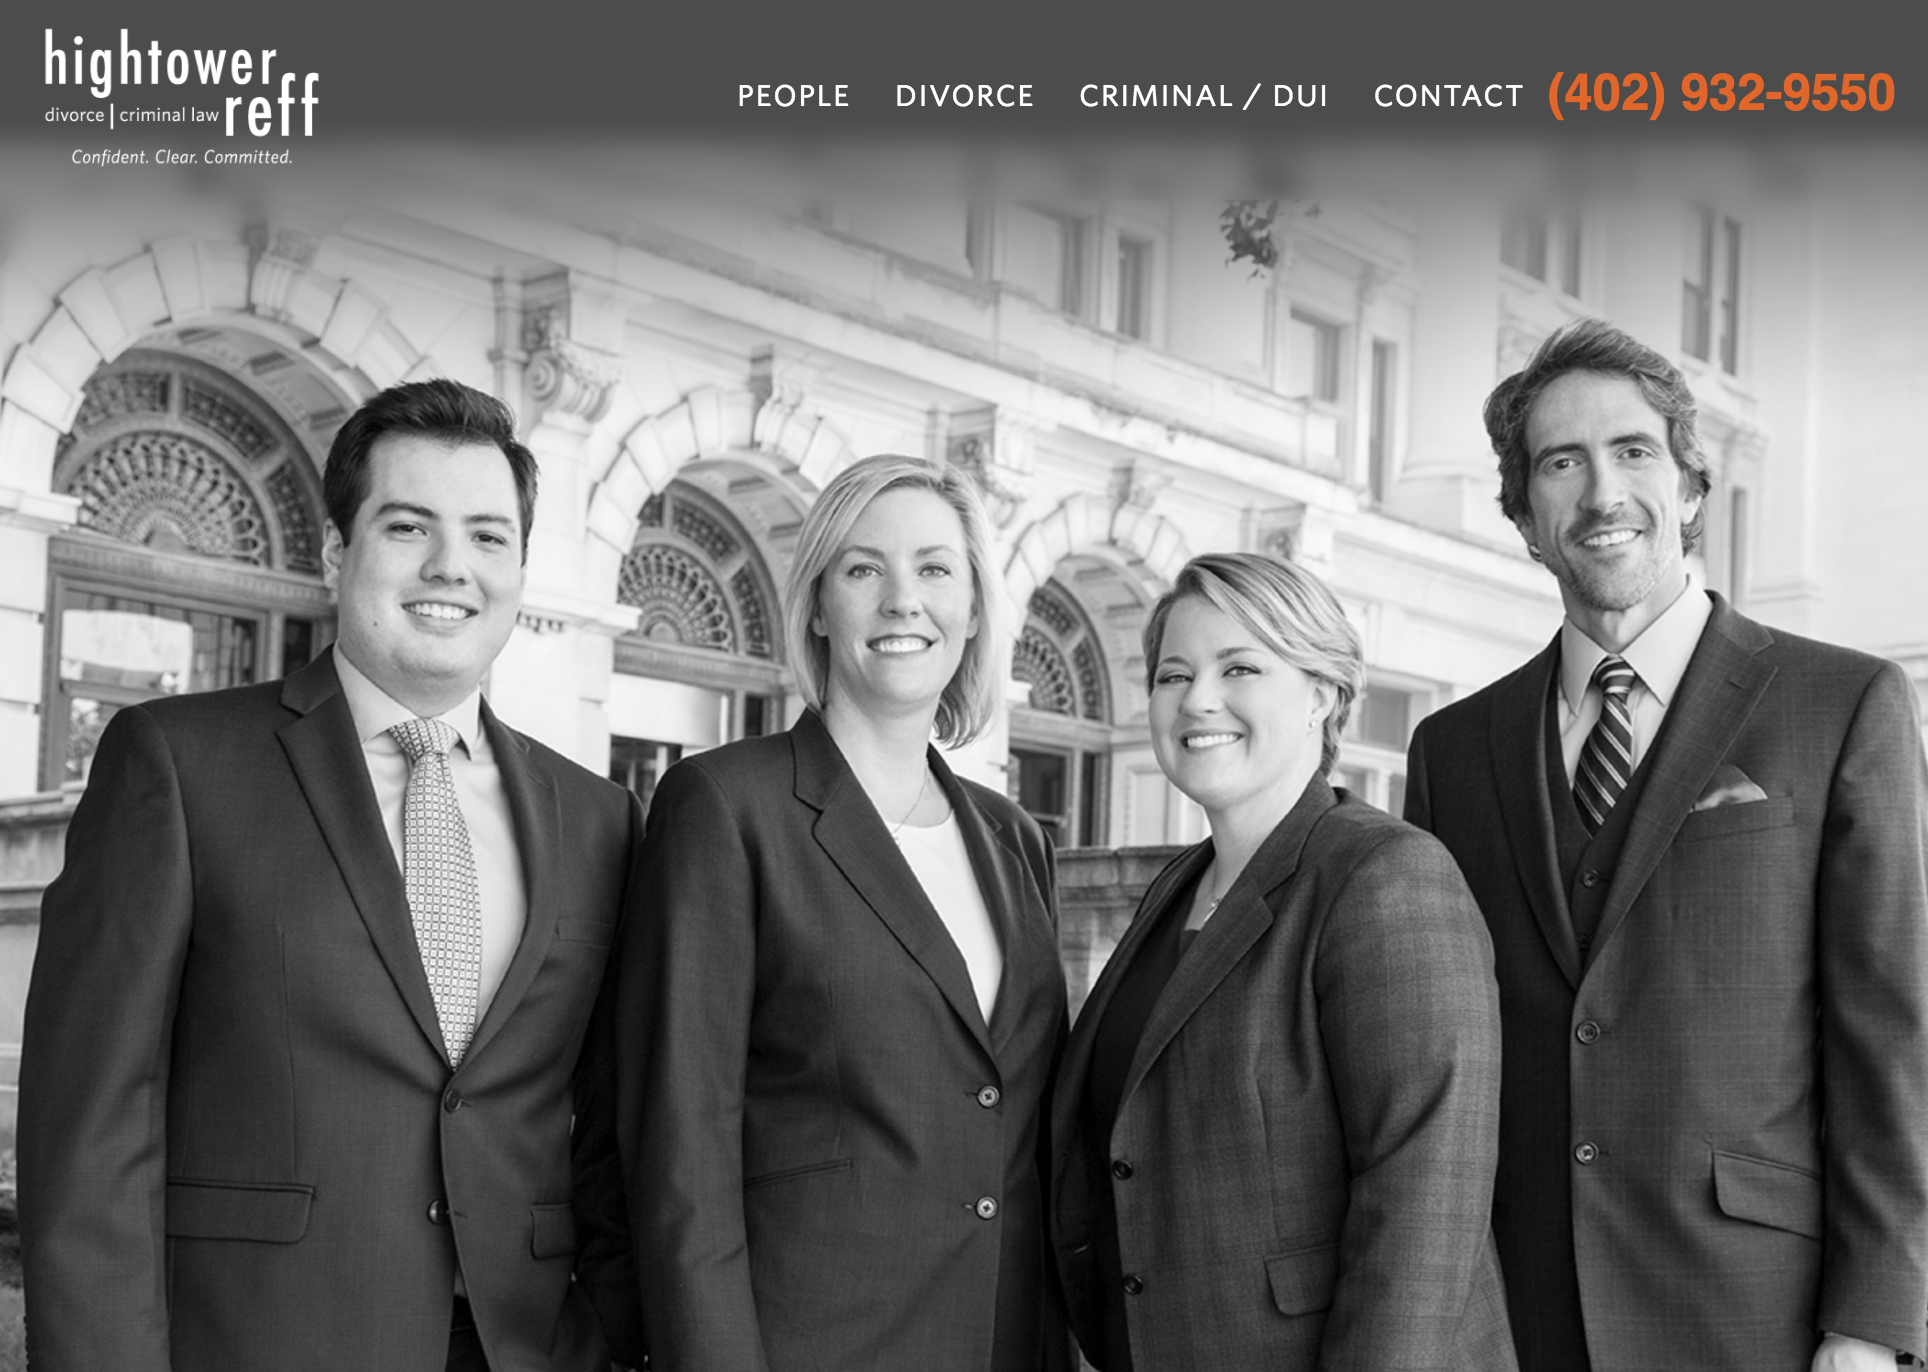 Hightower Reff, Omaha Divorce Lawyers